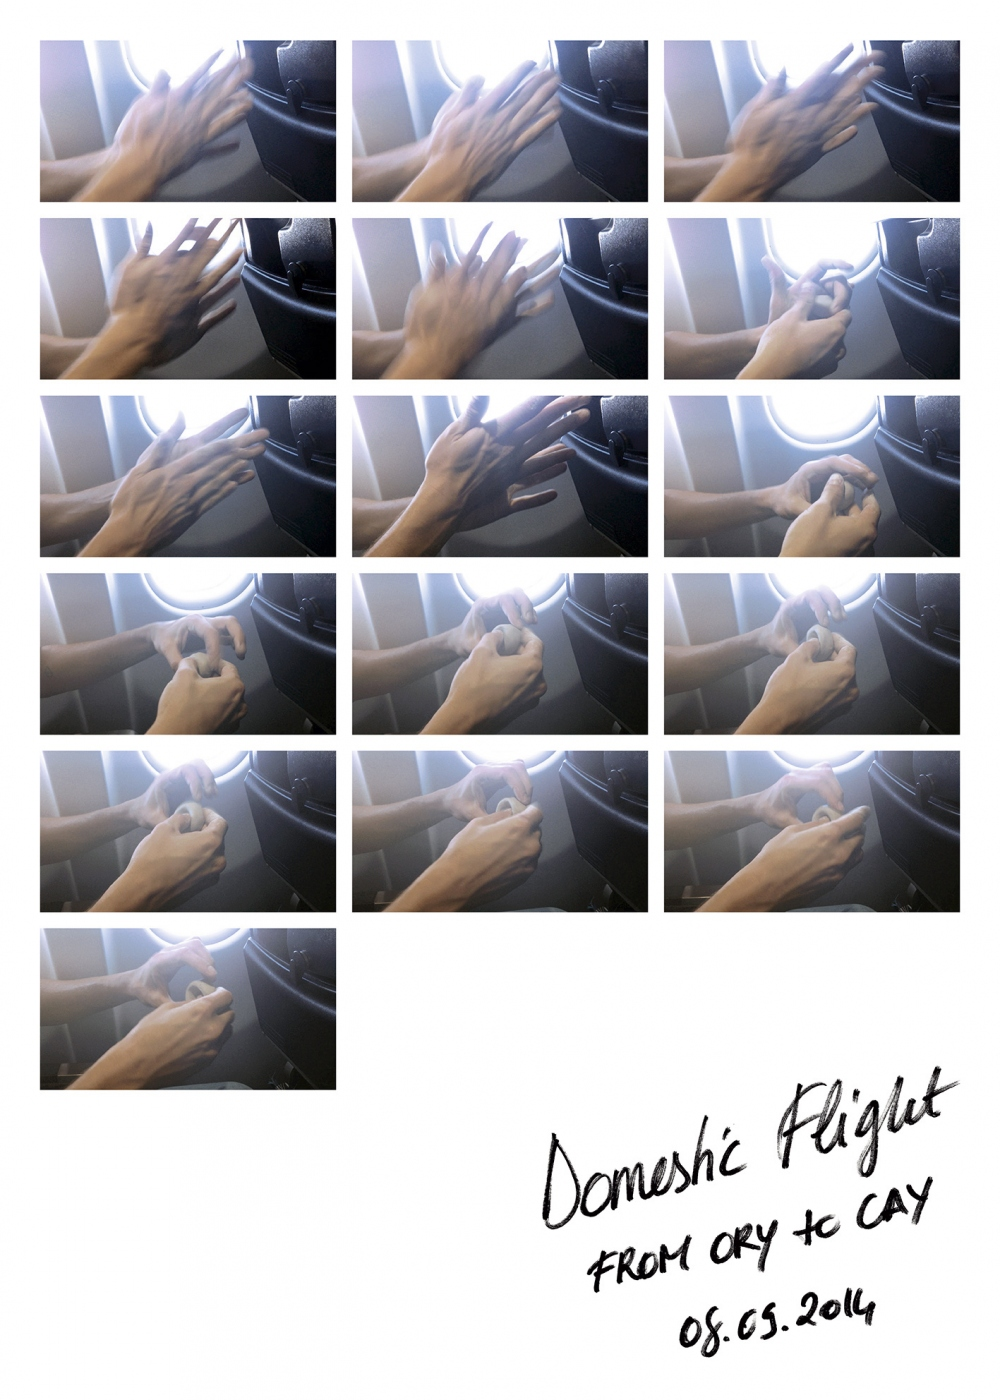 Domestic Flight (From ORY to CAY) — Maxime Bichon